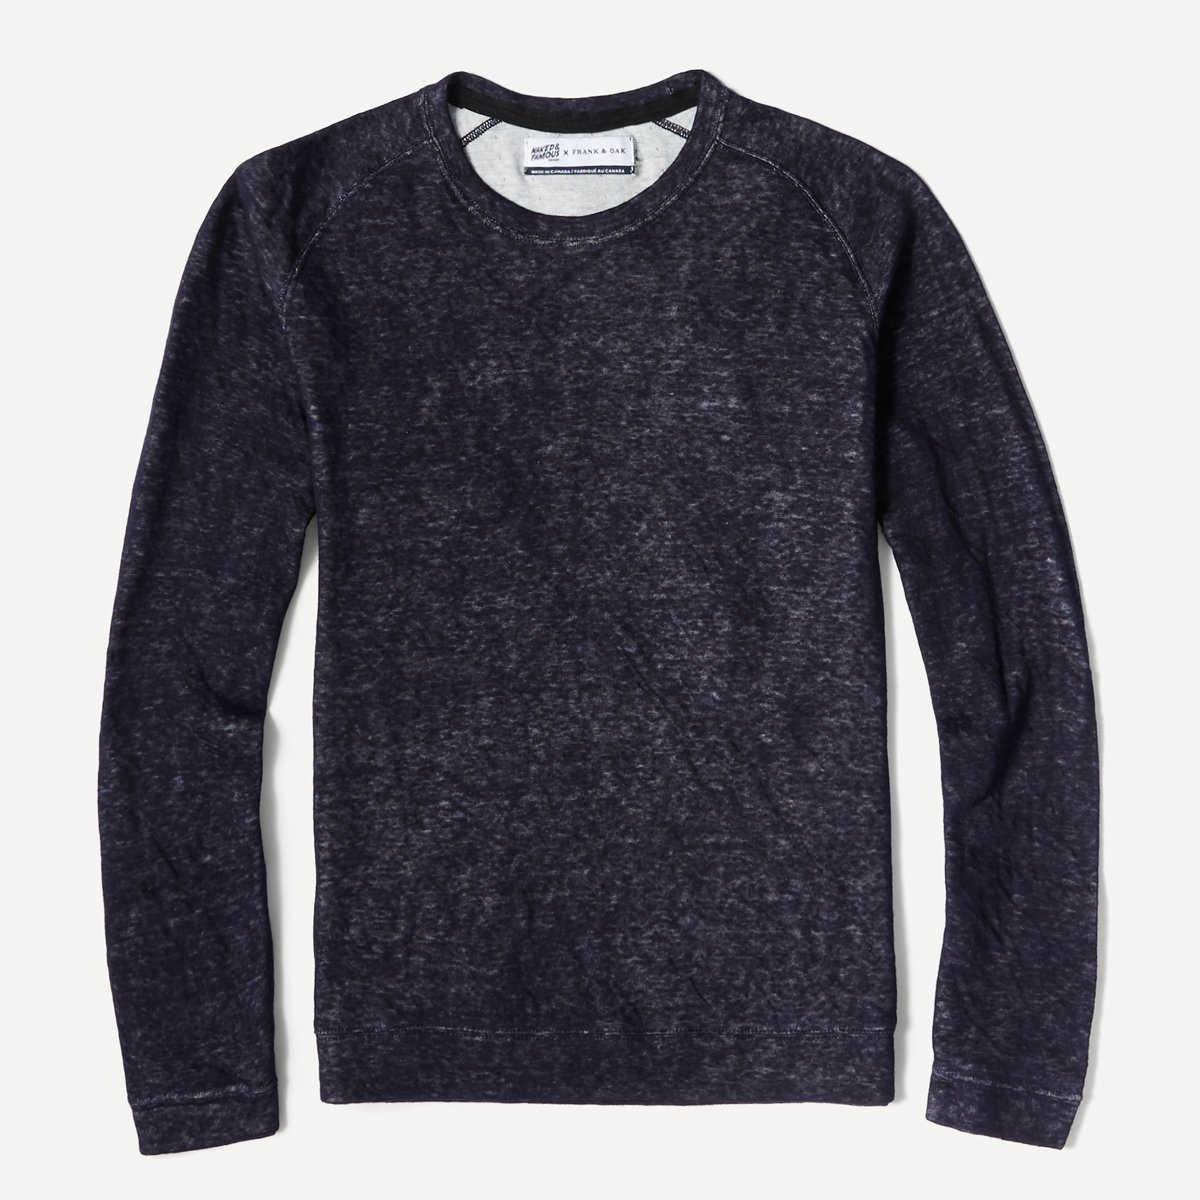 Naked & Famous x Frank & Oak Double-Faced Raglan Long Sleeve in Indigo